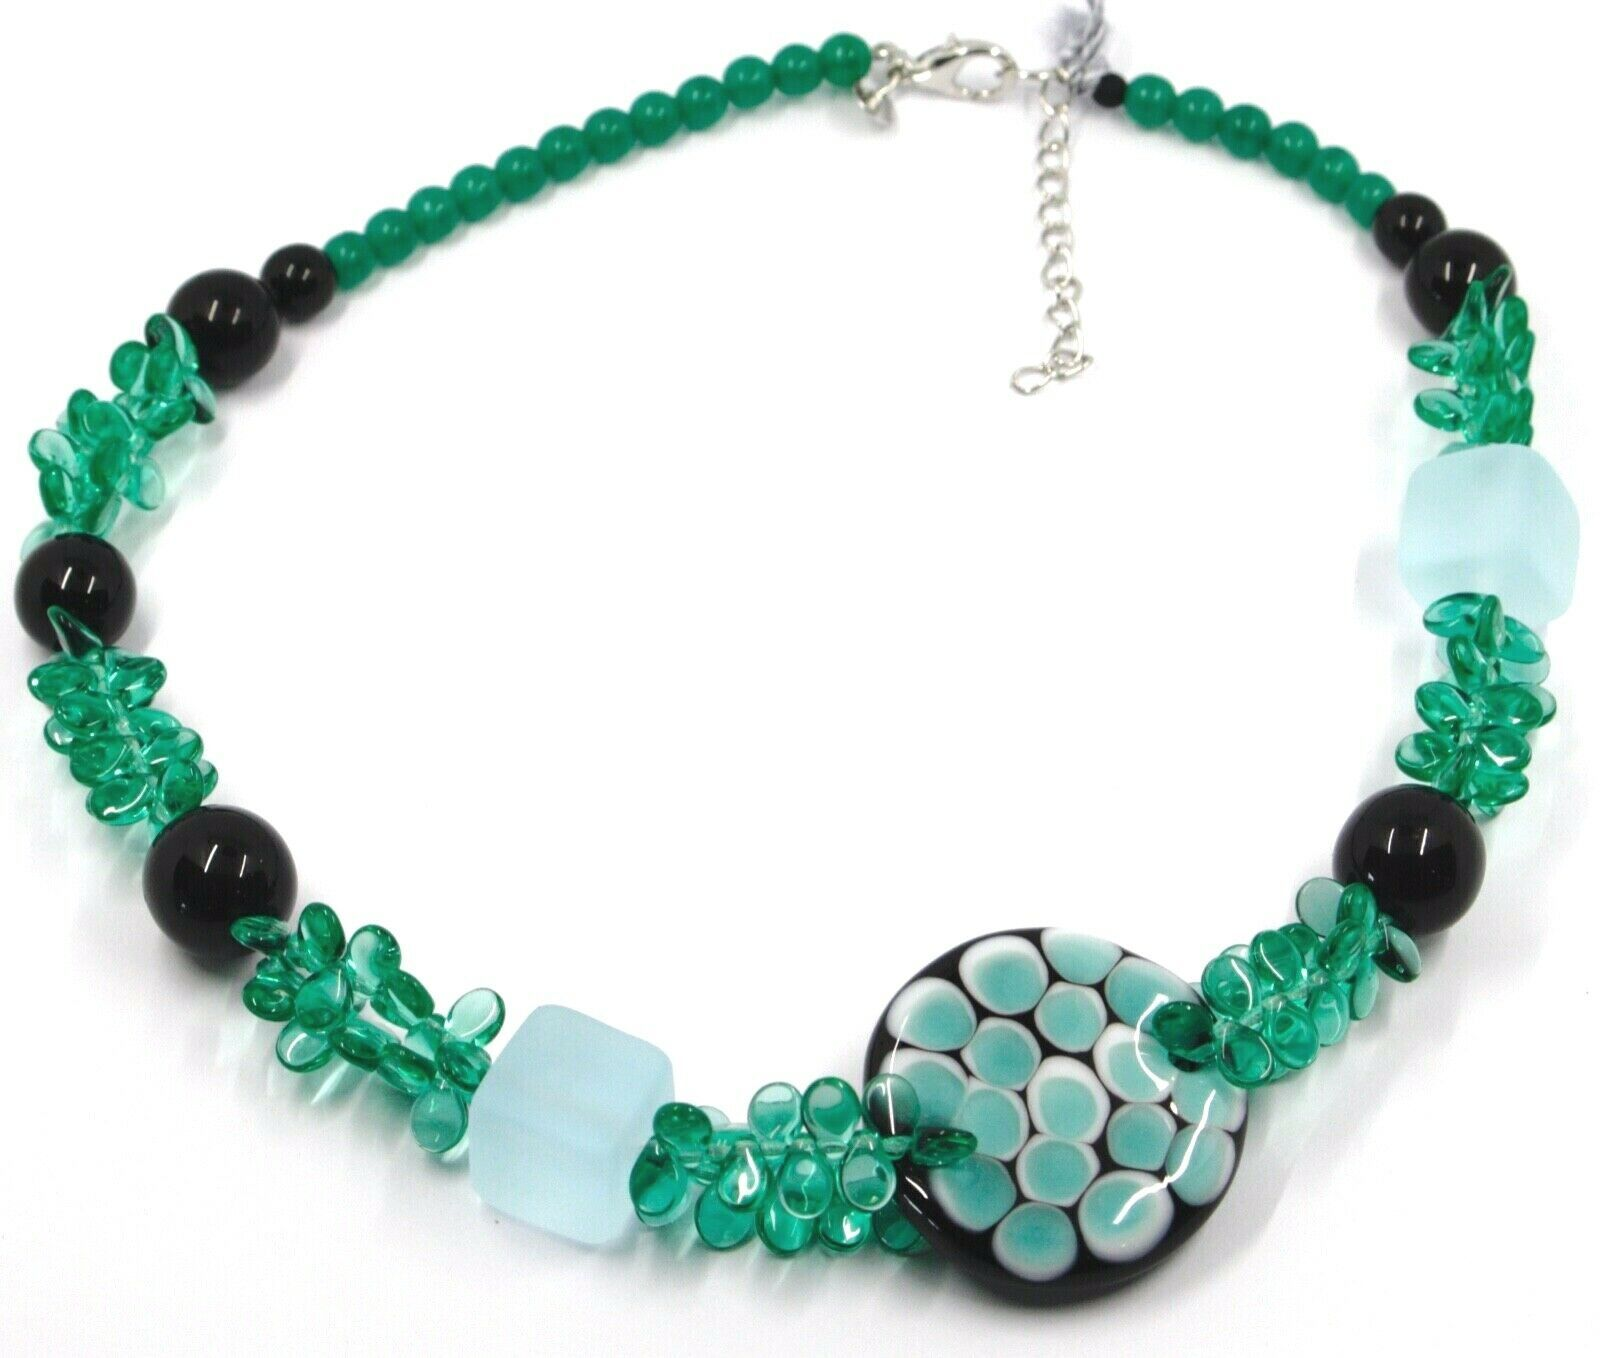 NECKLACE GREEN BLACK MURANO GLASS BUNCH OF PETAL DROPS SQUARE DISC ITALY MADE